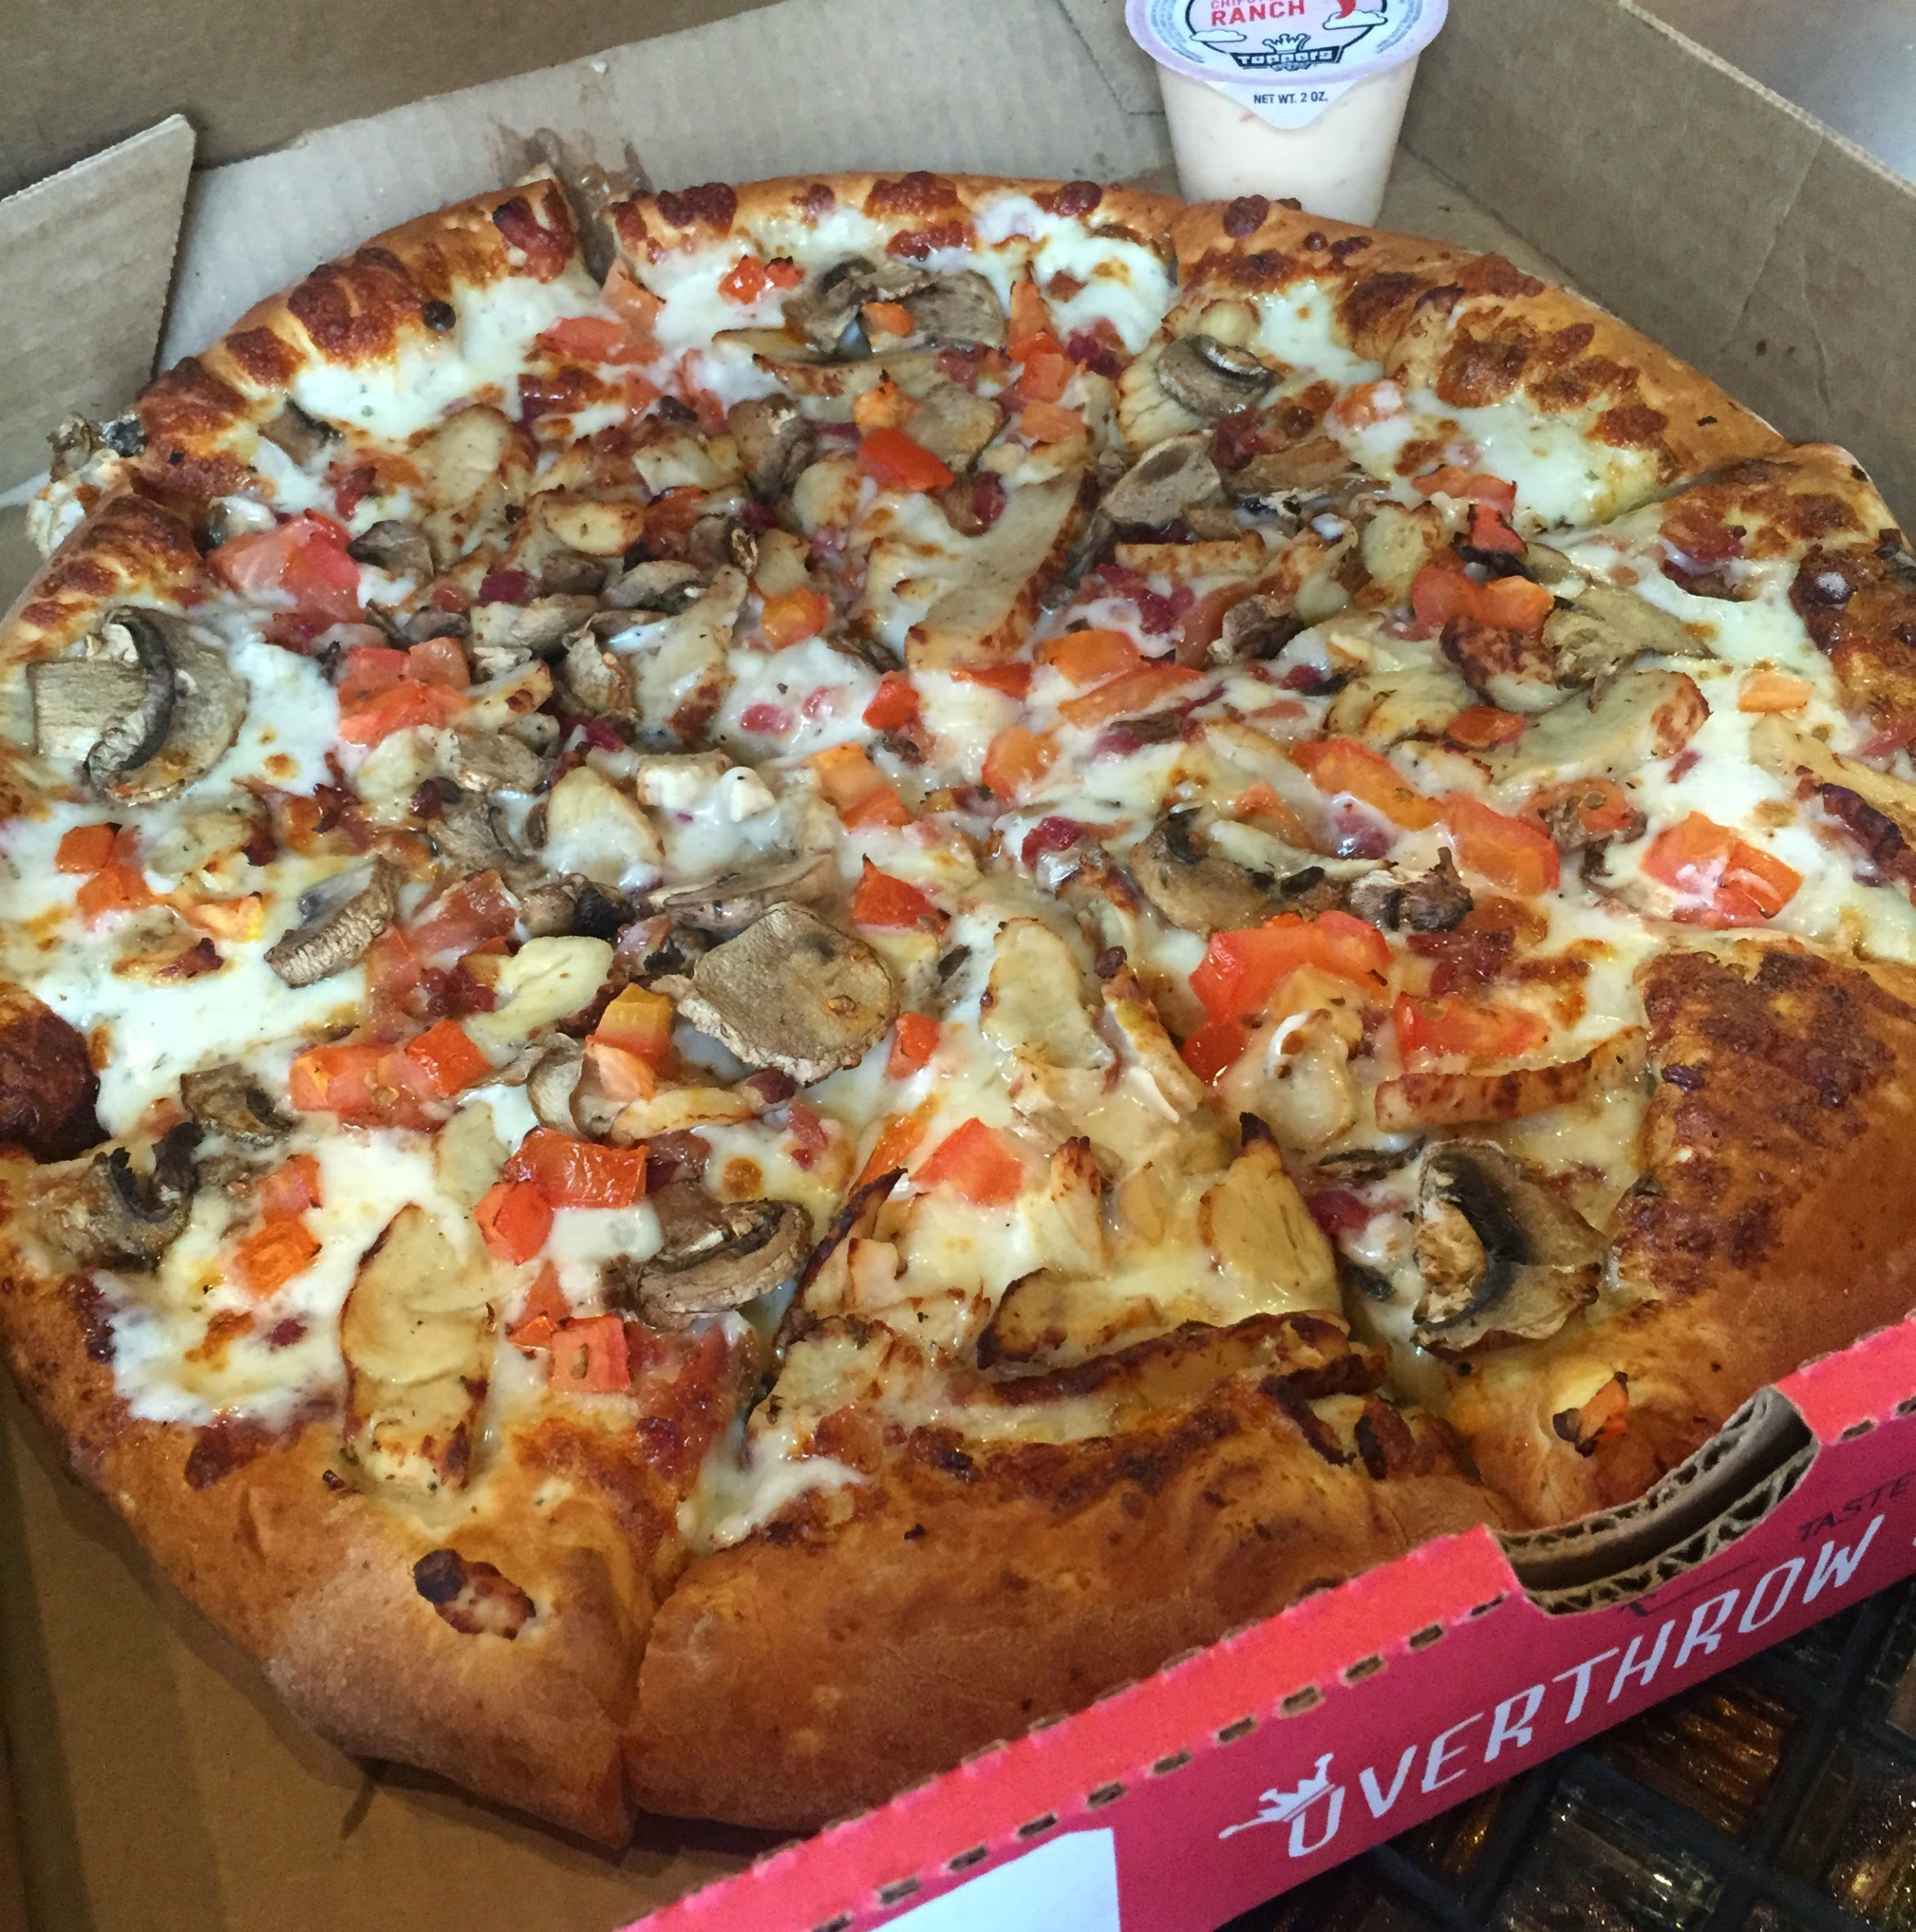 photo about Toppers Pizza Place Printable Coupons identified as Toppers pizza coupon codes thousand oaks ca - Price range going truck